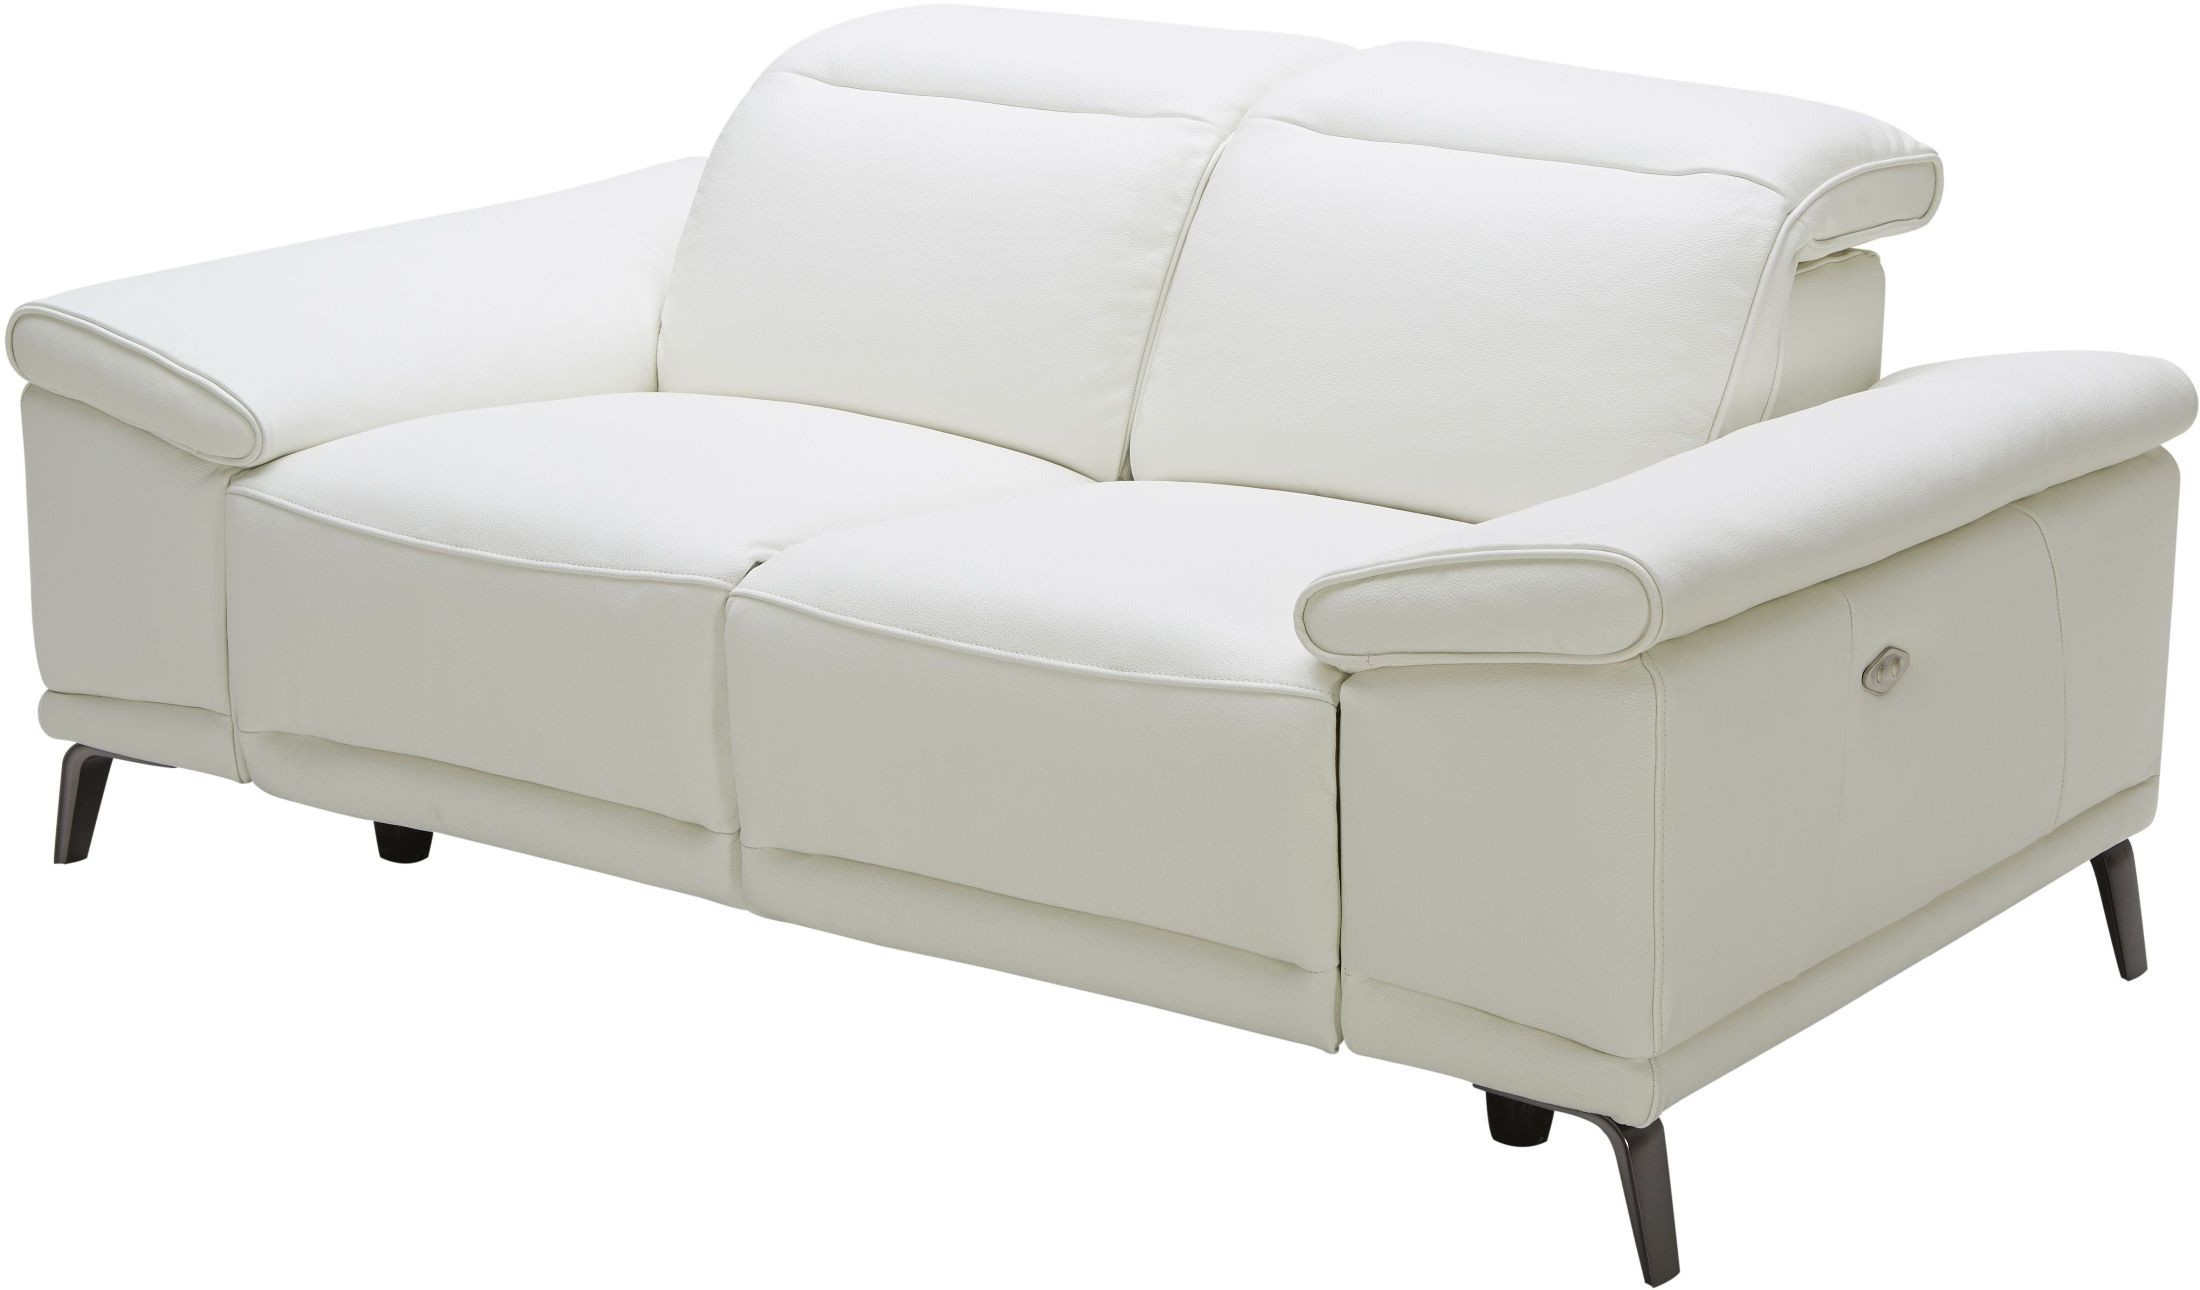 Gaia White Leather Power Reclining Loveseat From Jnm